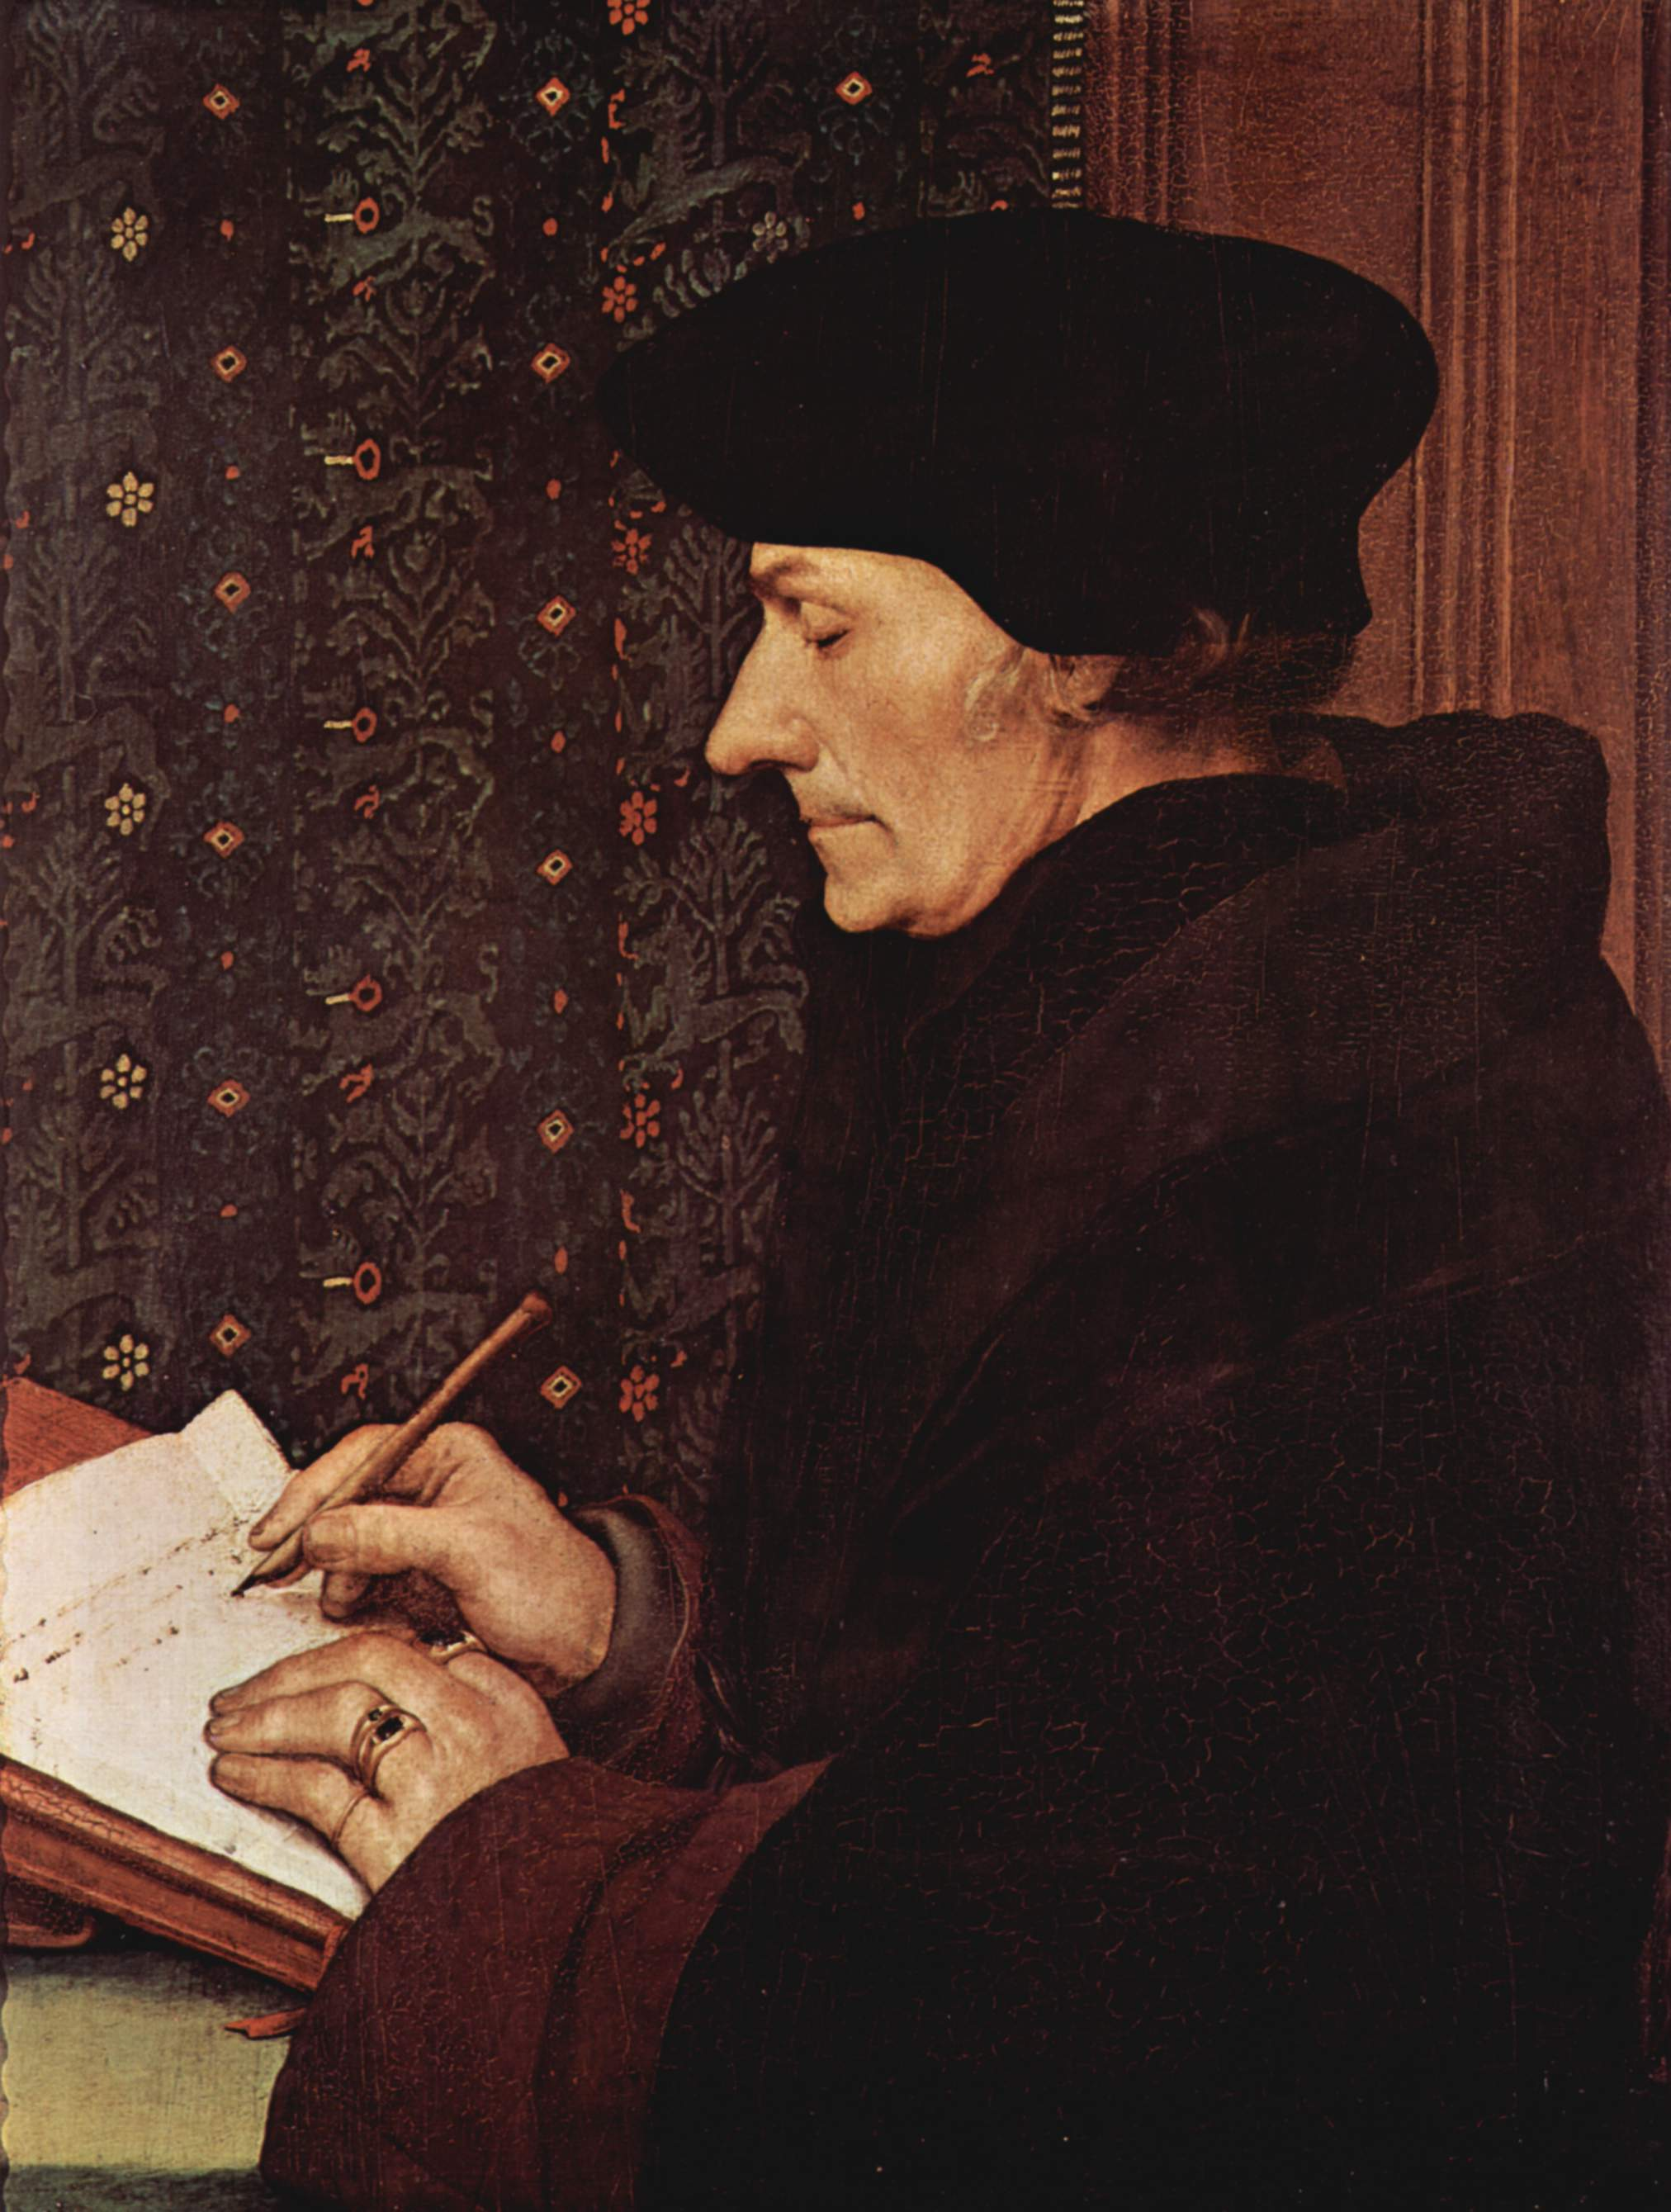 Holbein the Younger, Erasmus, 1523 (Louvre)